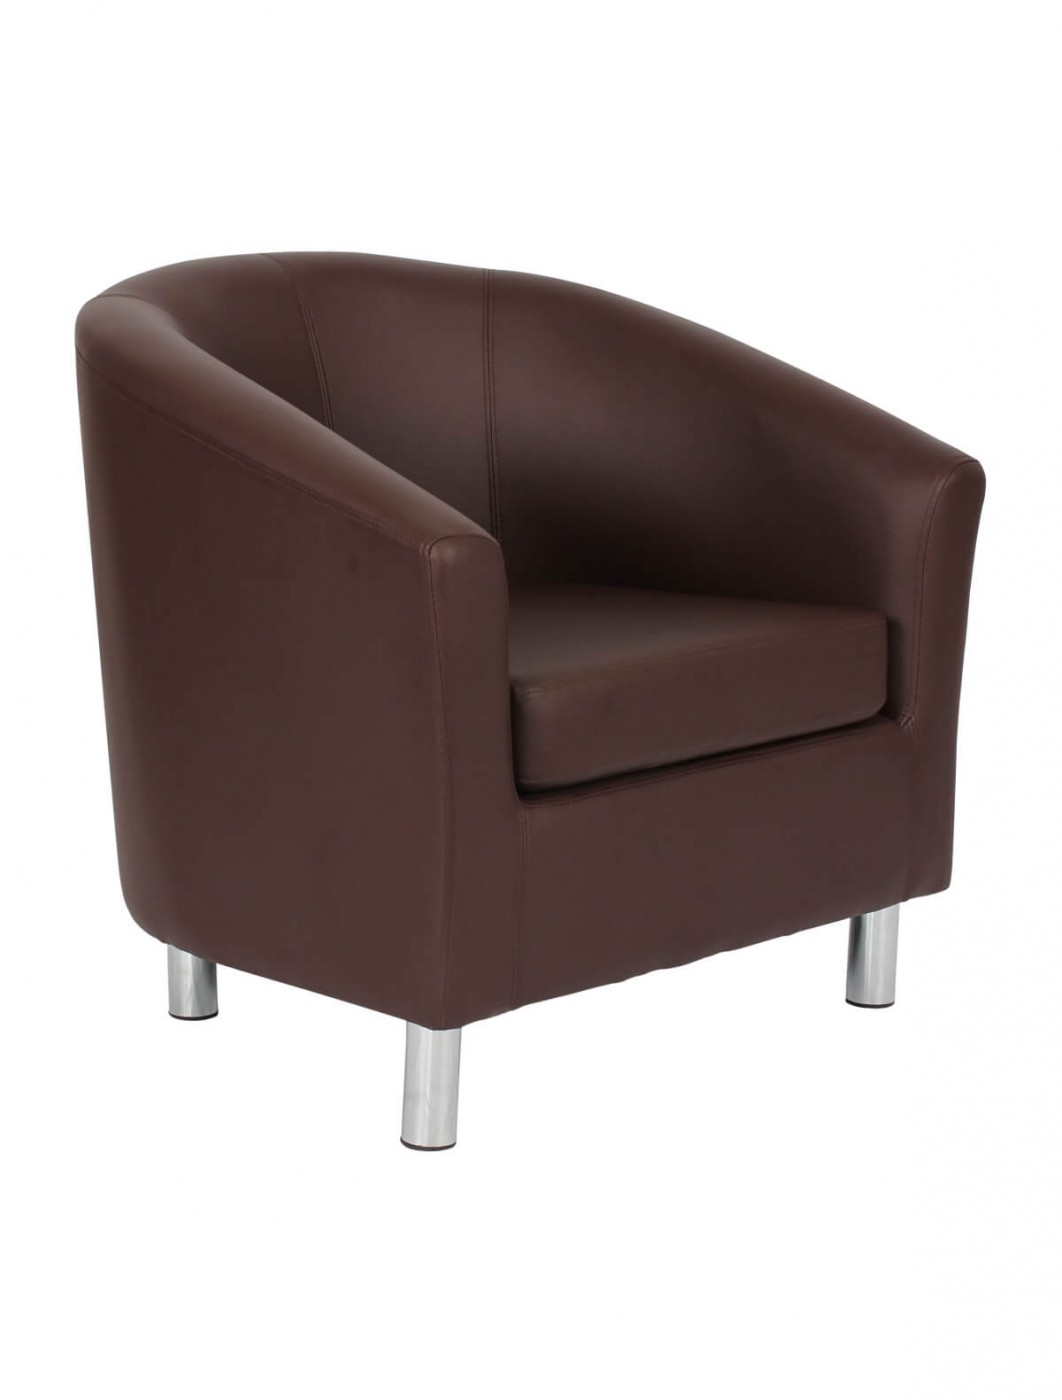 armchair pu leather tub chair of2201ml reception chairs 121